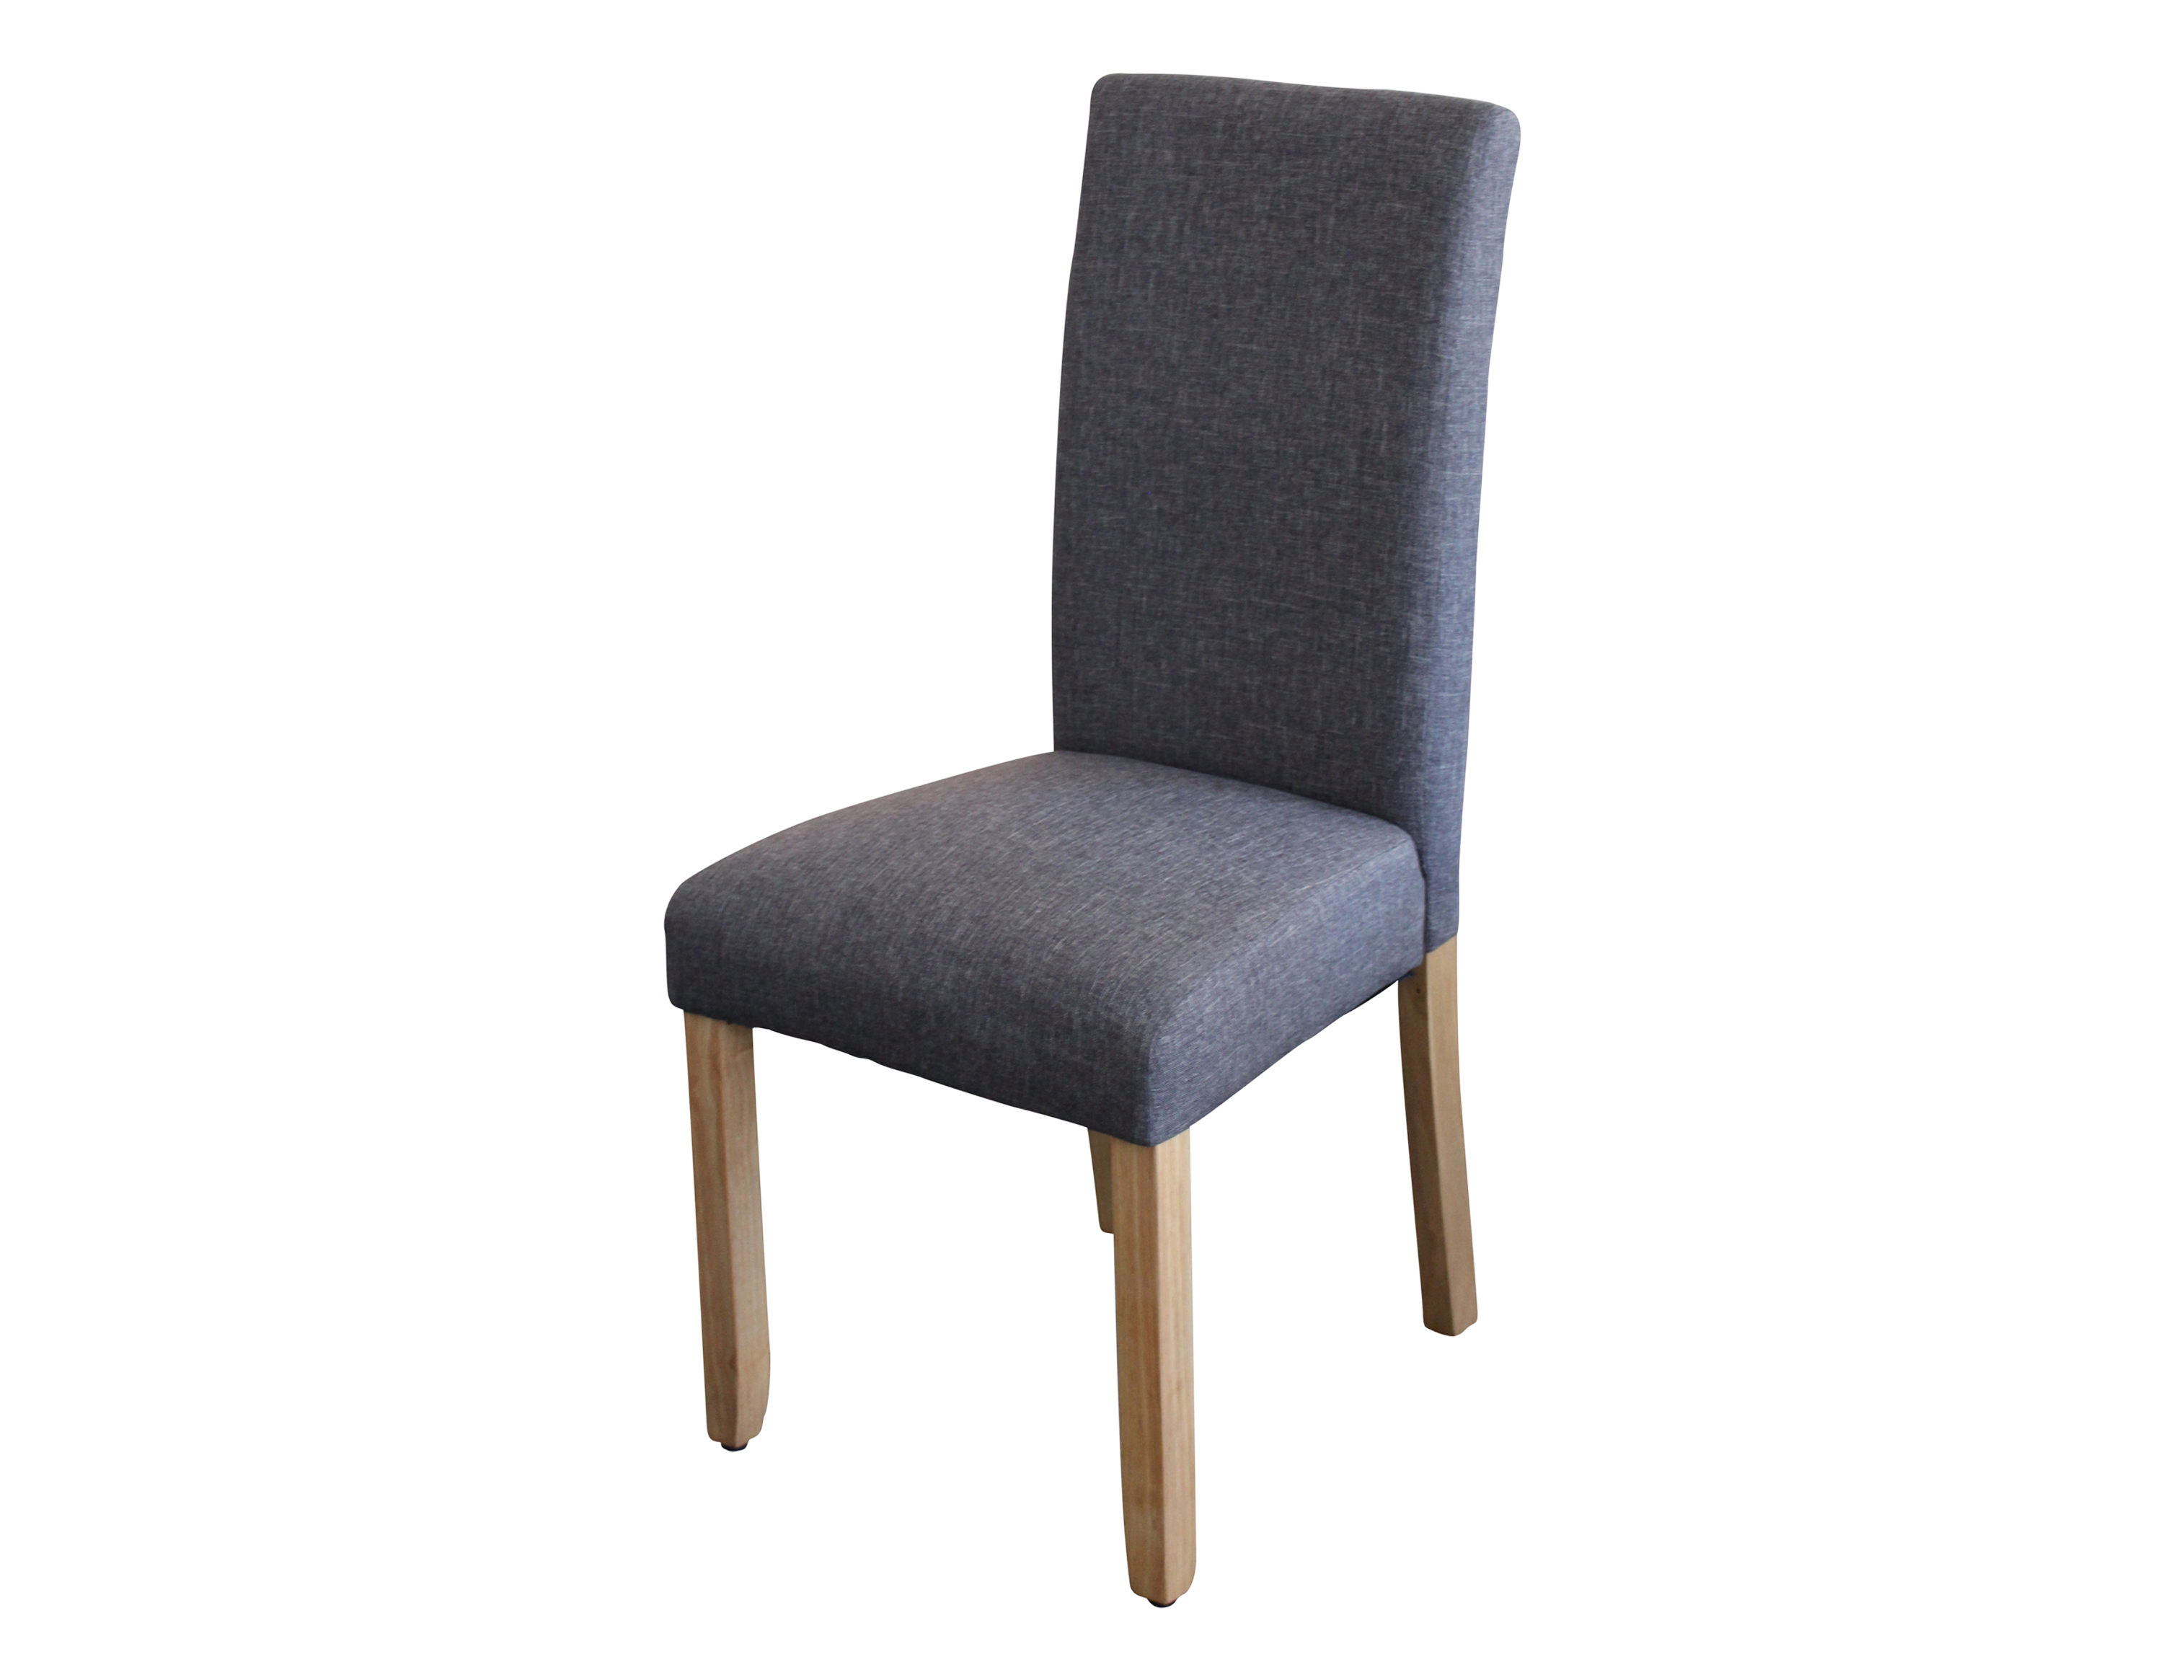 Ashton dining chair upholstered in dark grey fabric berton furniture - Grey fabric dining room chairs designs ...